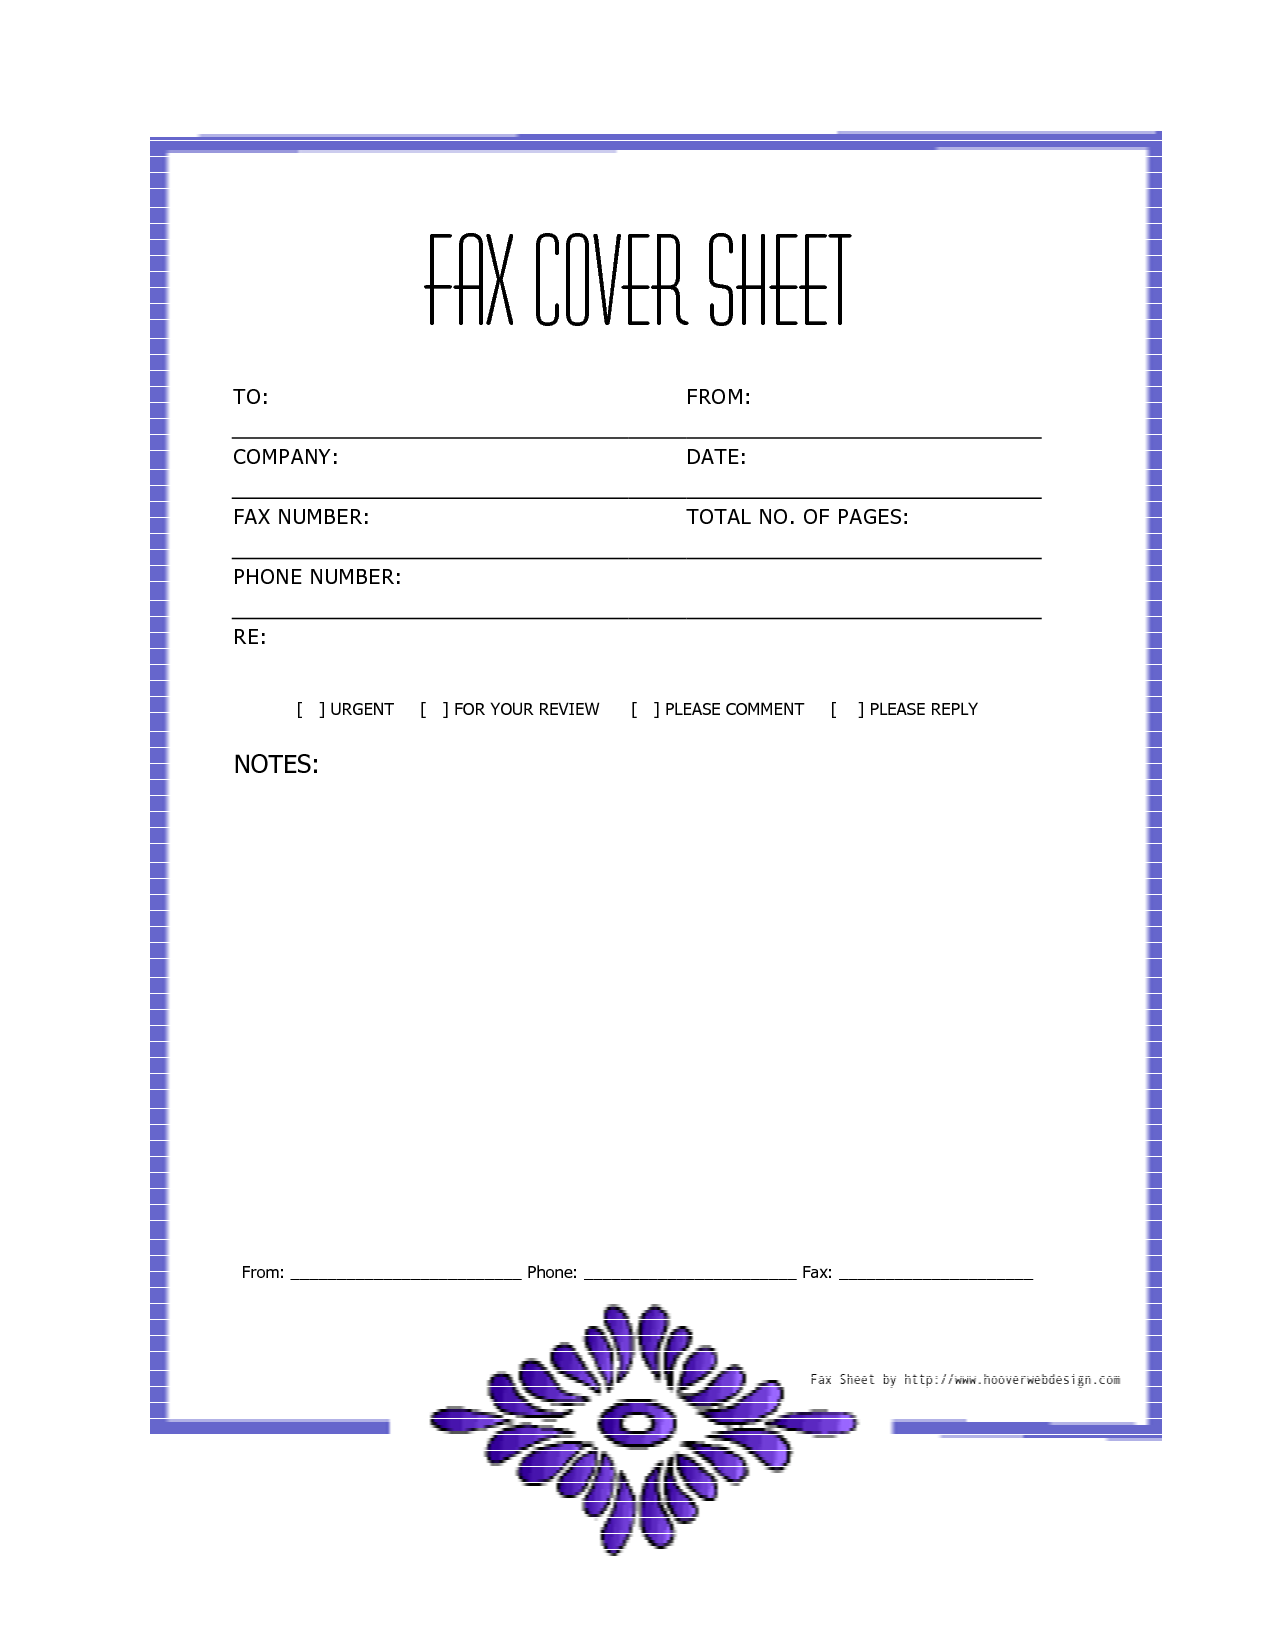 Free Downloads Fax Covers Sheets | Free Printable Fax Cover Sheet Template  Elegant   Download As  Fax Cover Template Microsoft Word